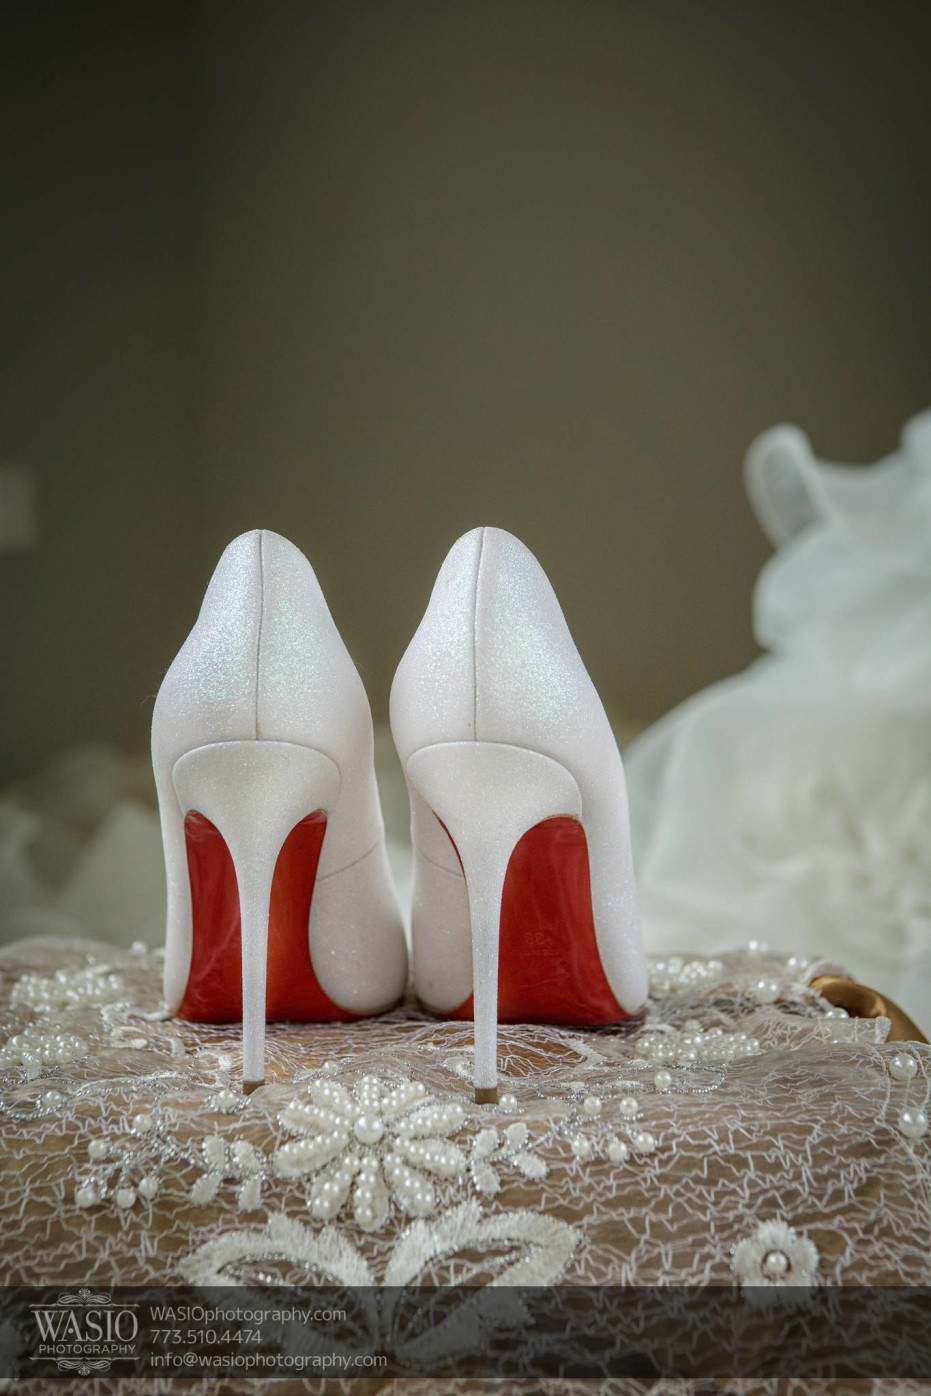 Country-club-wedding-red-soles-louboutin-shoes-white-perfect-fashion-0061-931x1396 The Country Club Wedding - Nicole + Dean